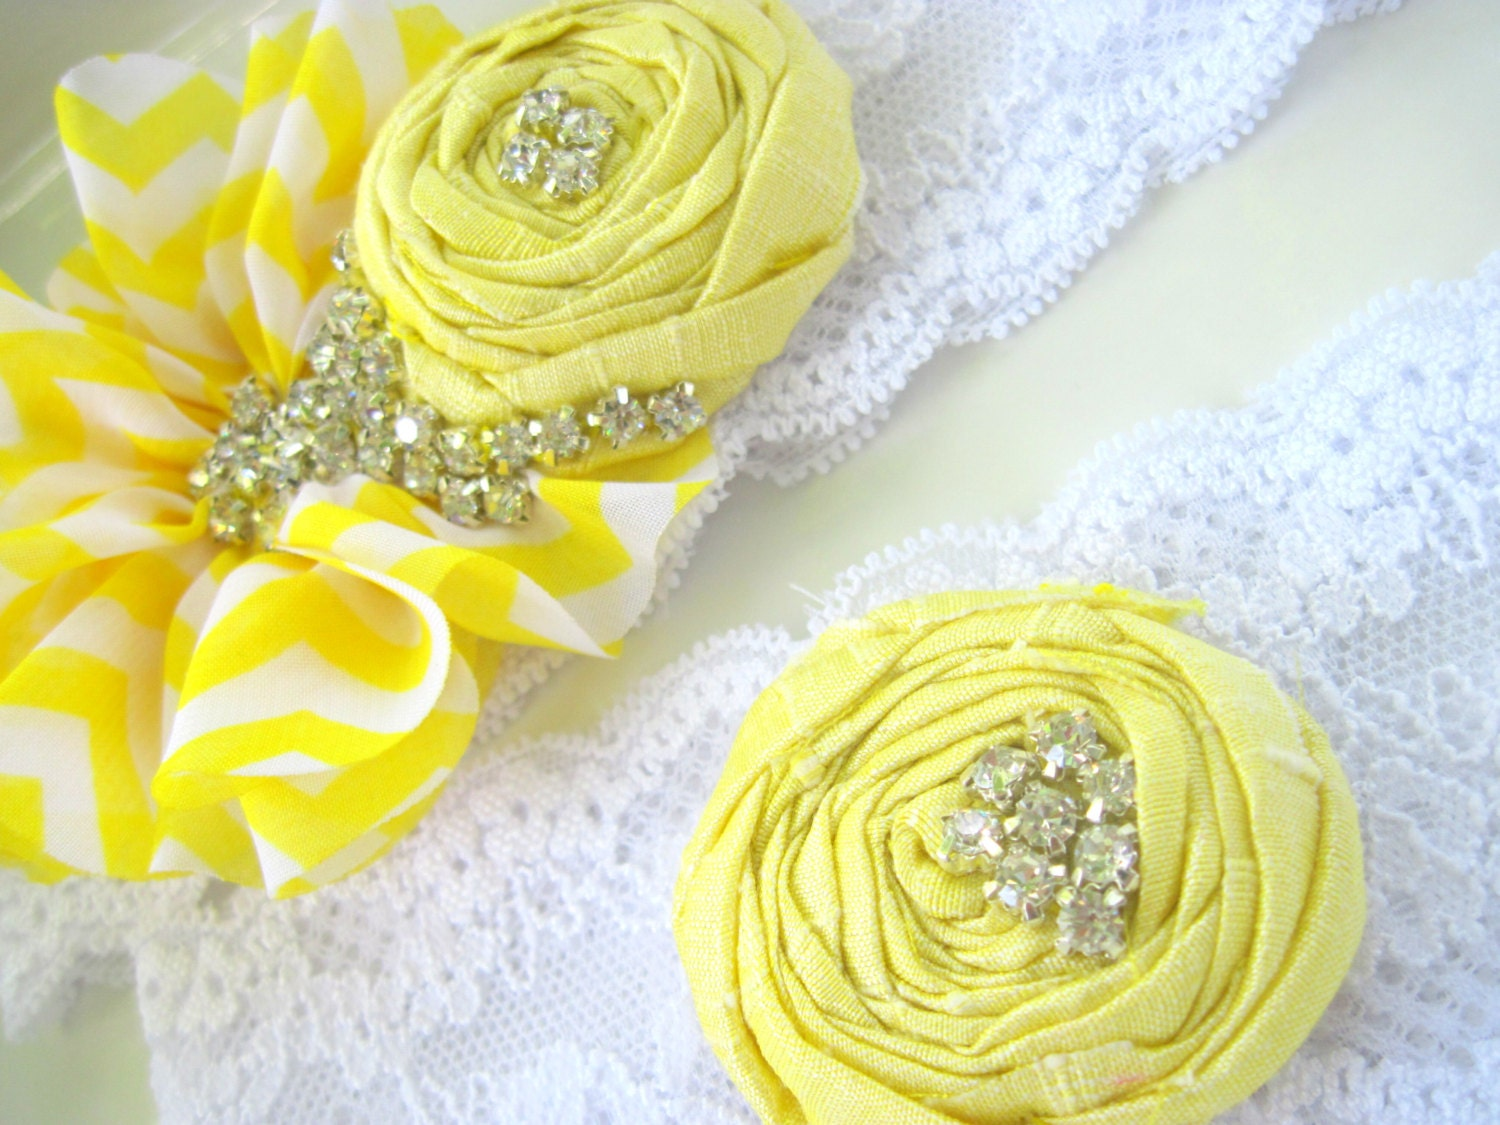 Yellow wedding garter - chevron - bridal accessory - rhinestone garter